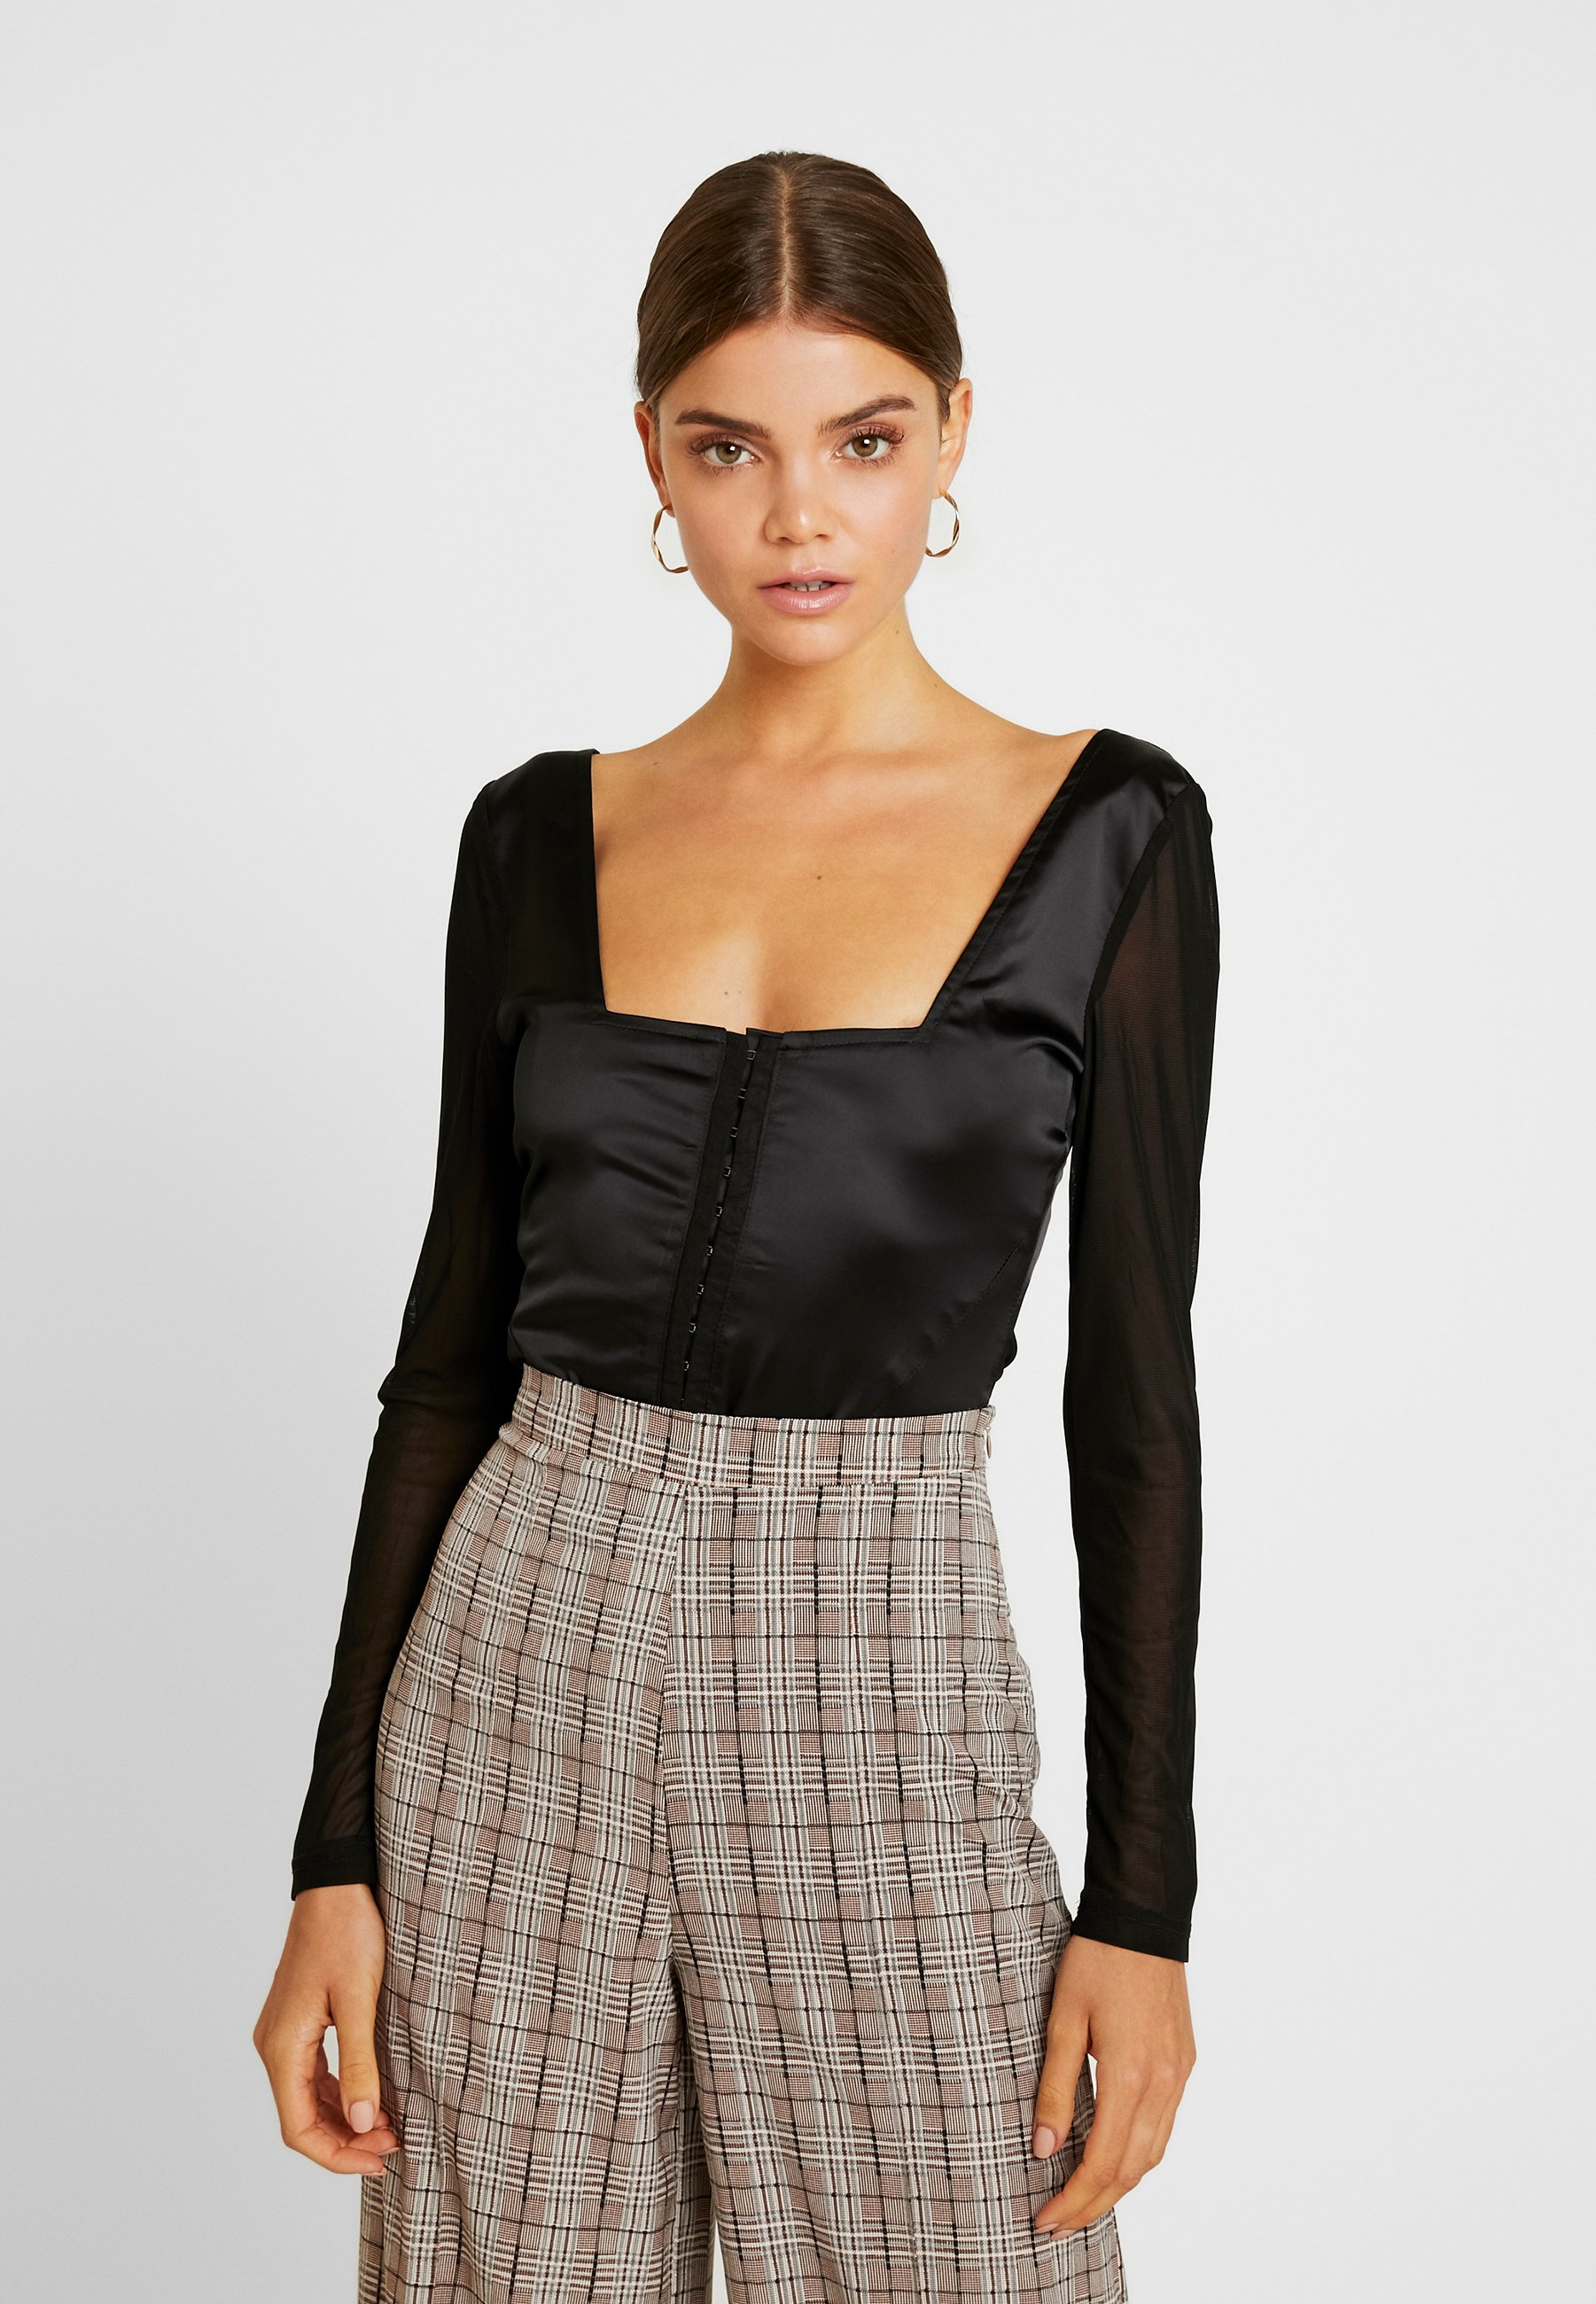 Missguided CorsetBlouse Missguided Black Black CorsetBlouse Black Sleeves Sleeves Sleeves CorsetBlouse Missguided lKJTcF1